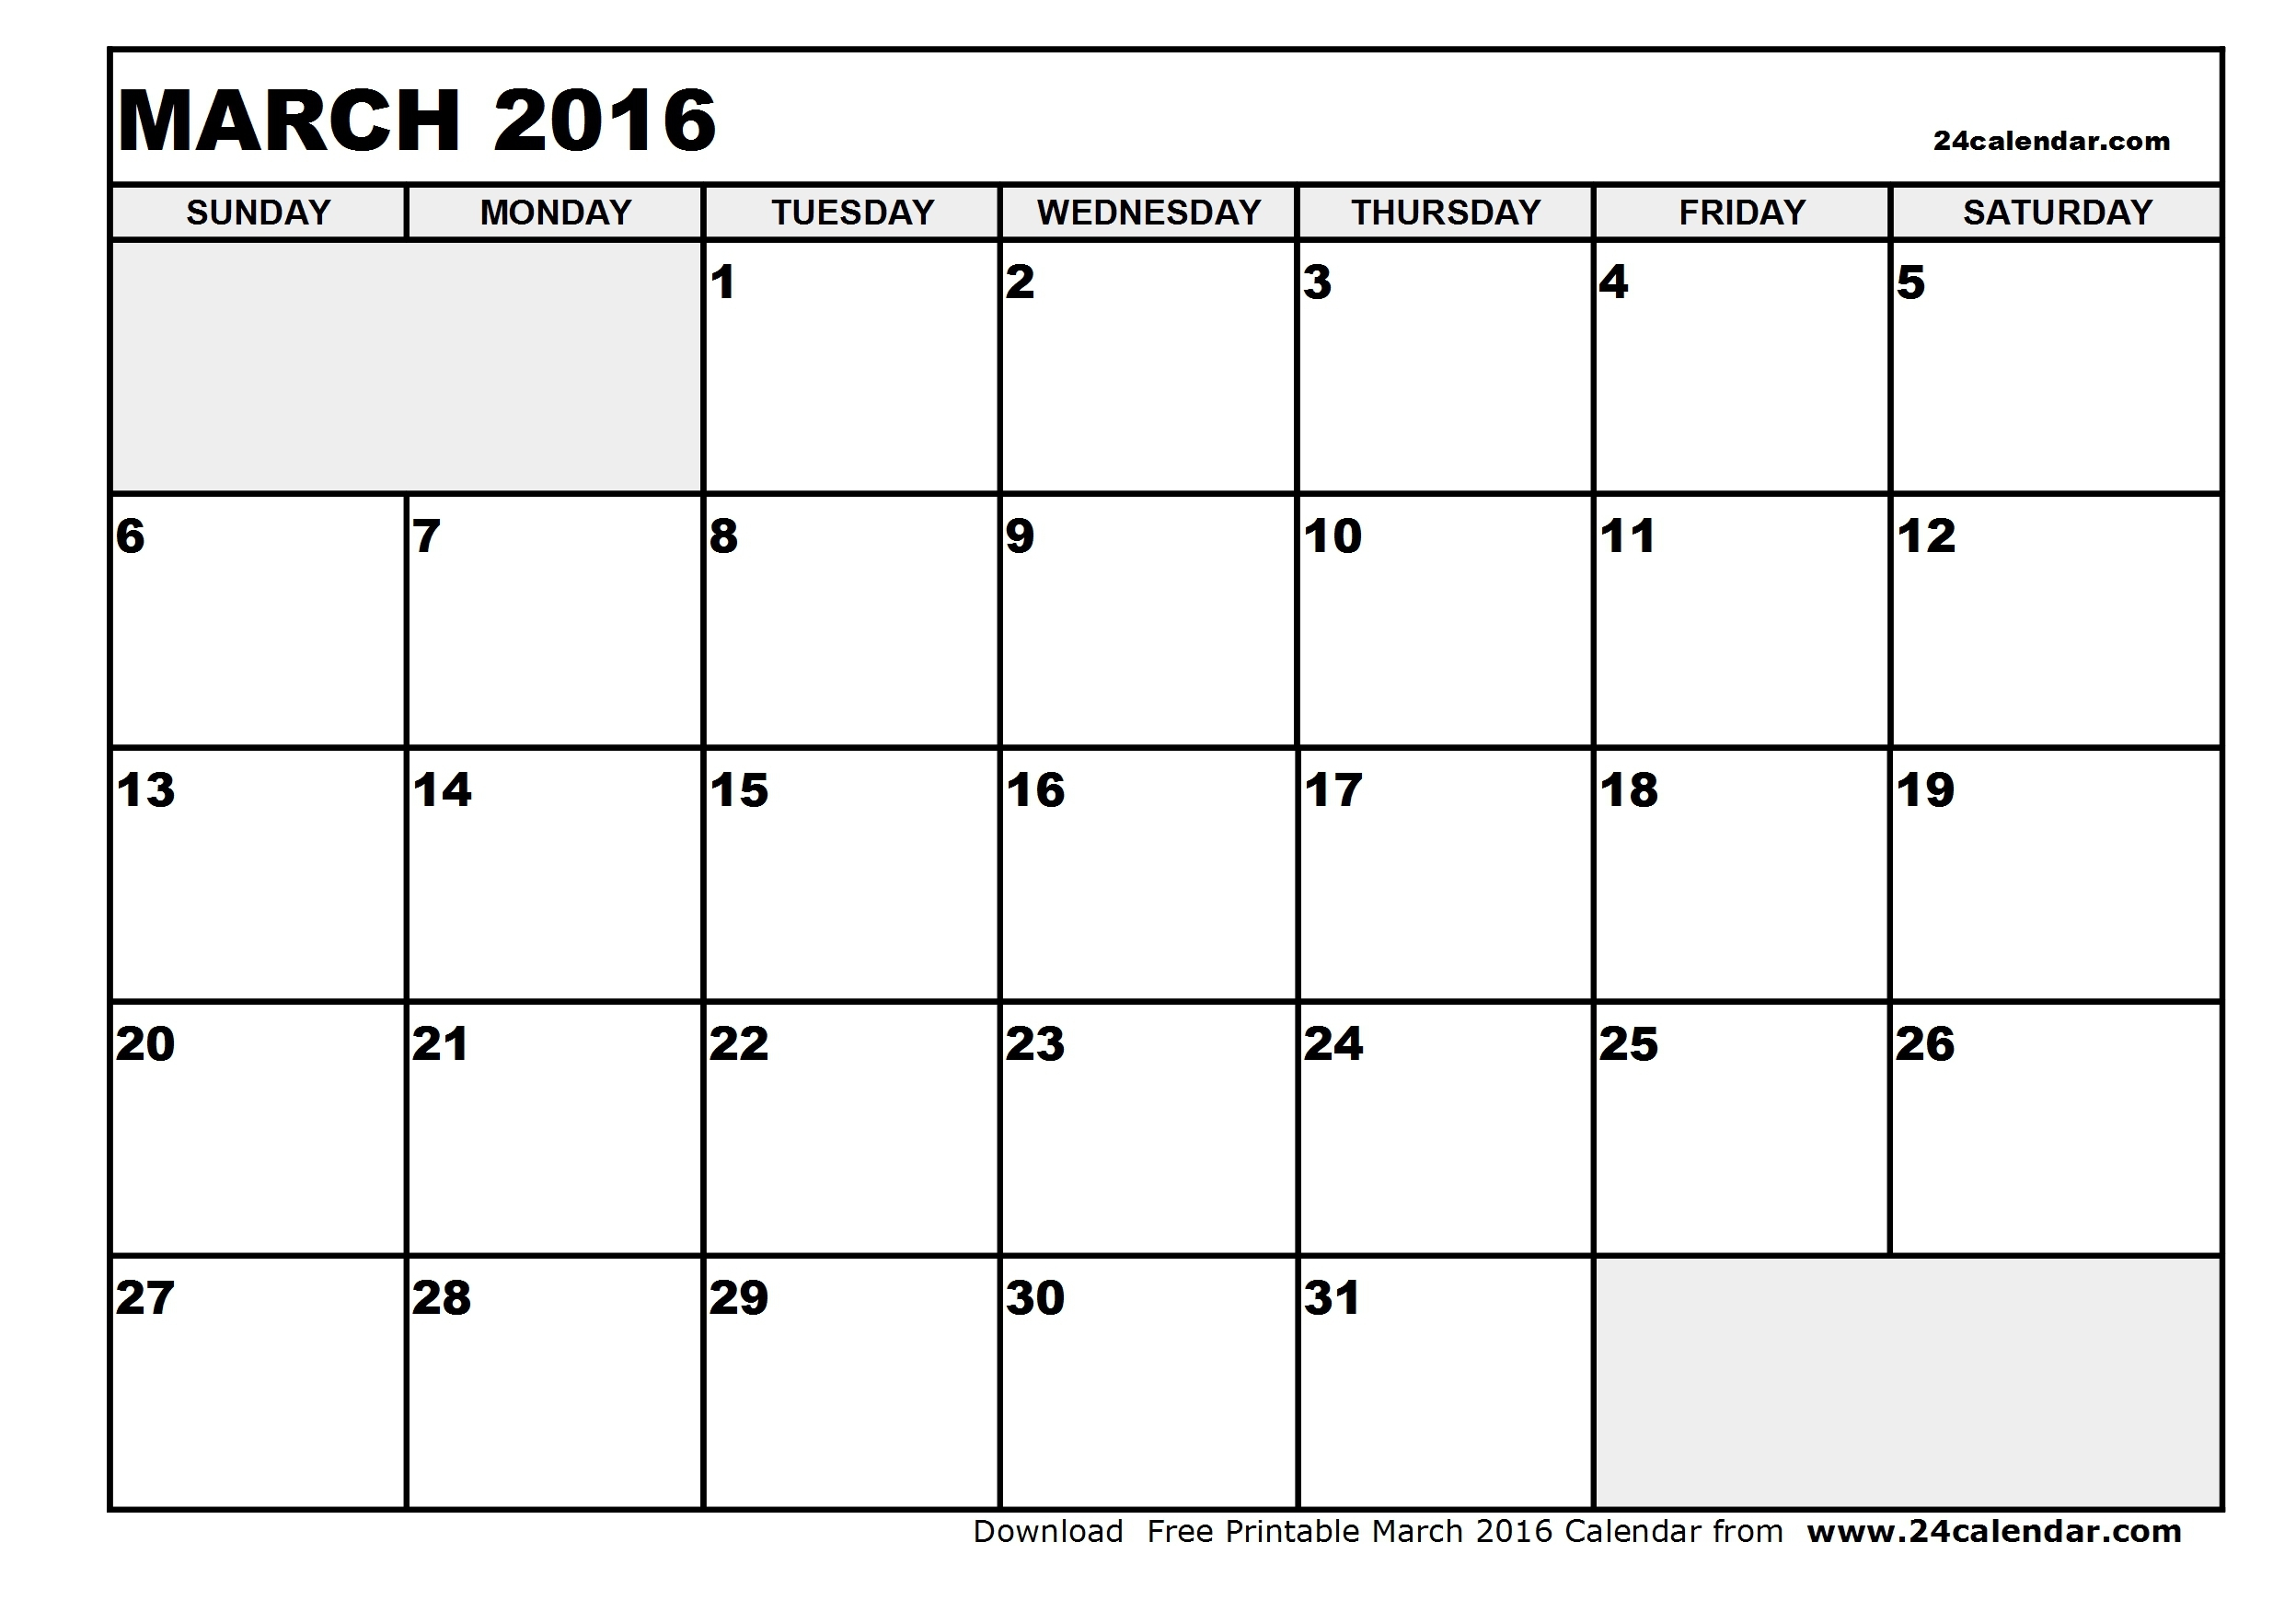 Monthly Appointment Calendars To Print And Fill Out Calendar3abry